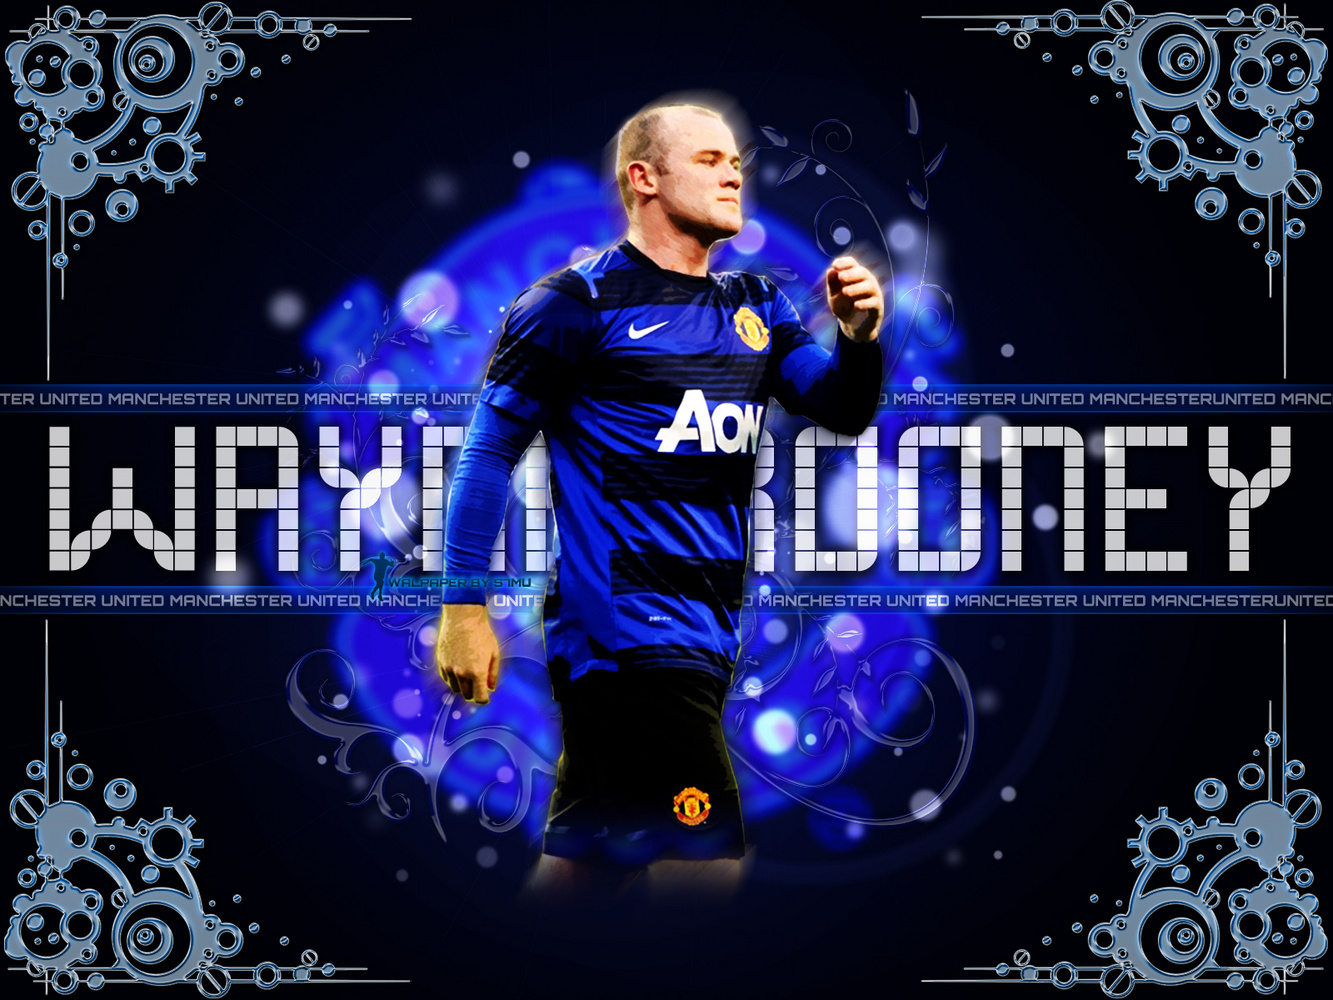 Wayne Rooney hd Nice Wallpapers 2012. 1333 x 1000.Hairstyles Girls Soccer